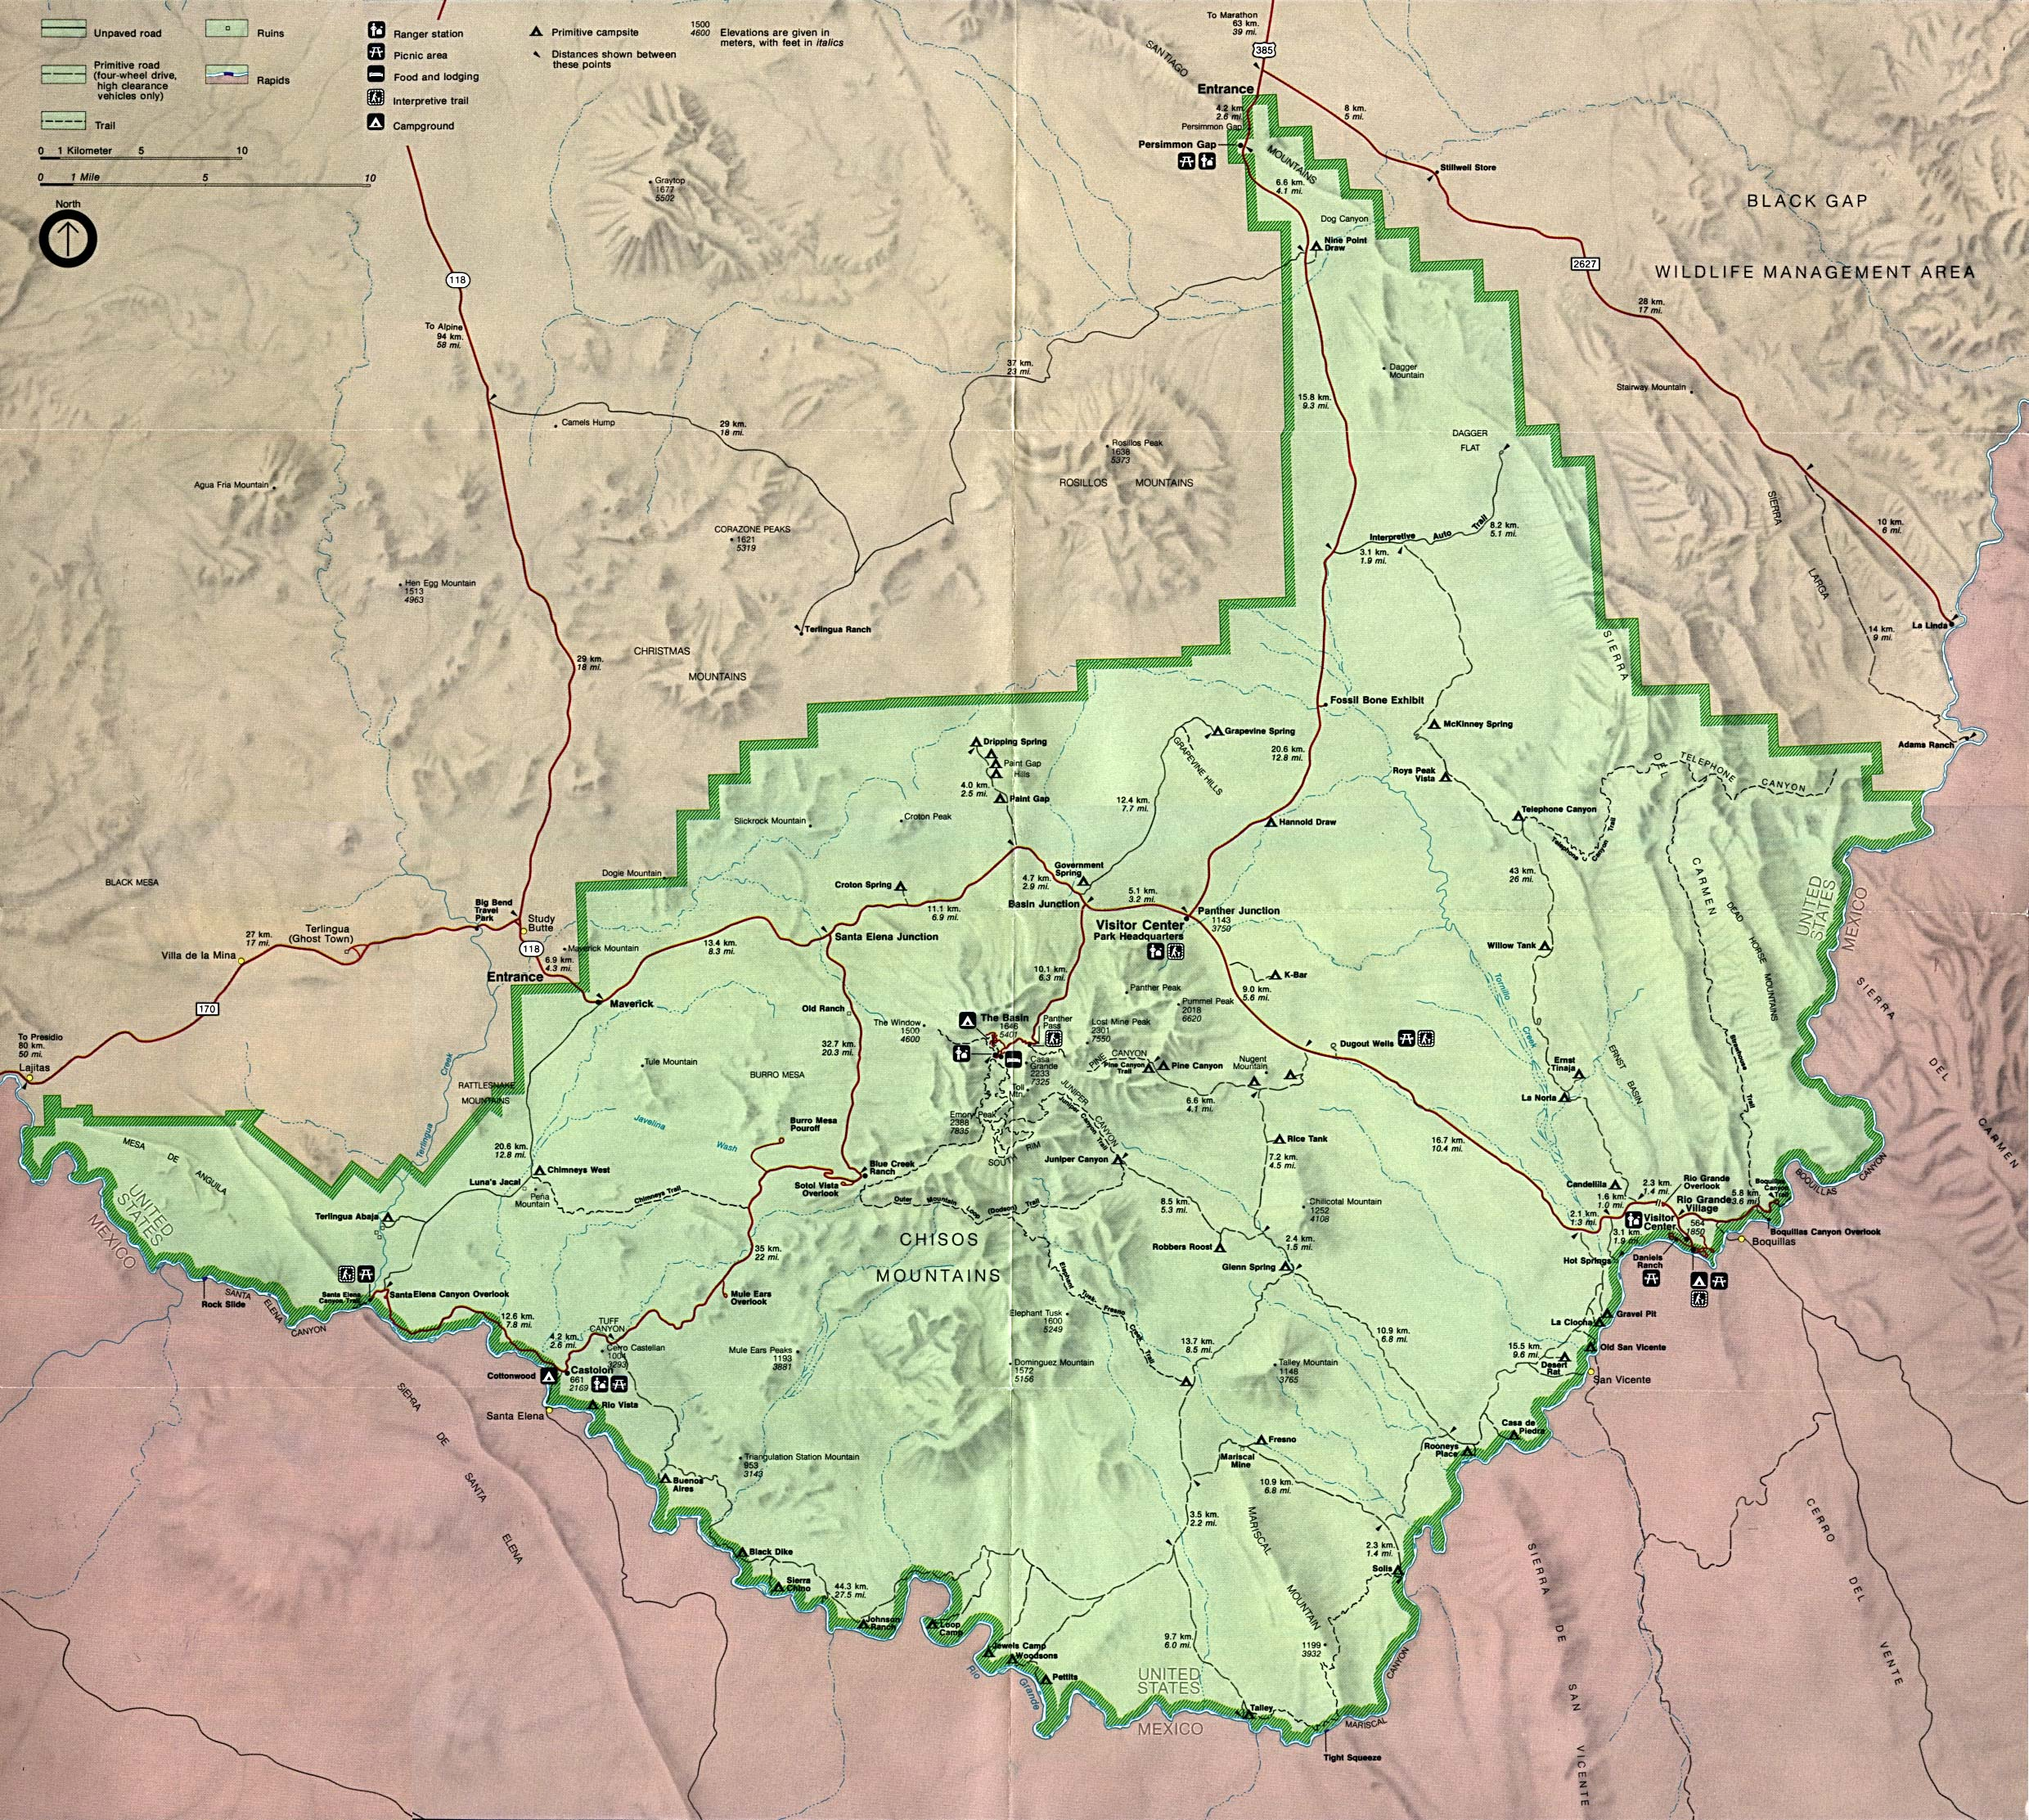 1Up Travel - Maps of United States (U.S) National Parks, Monuments ...